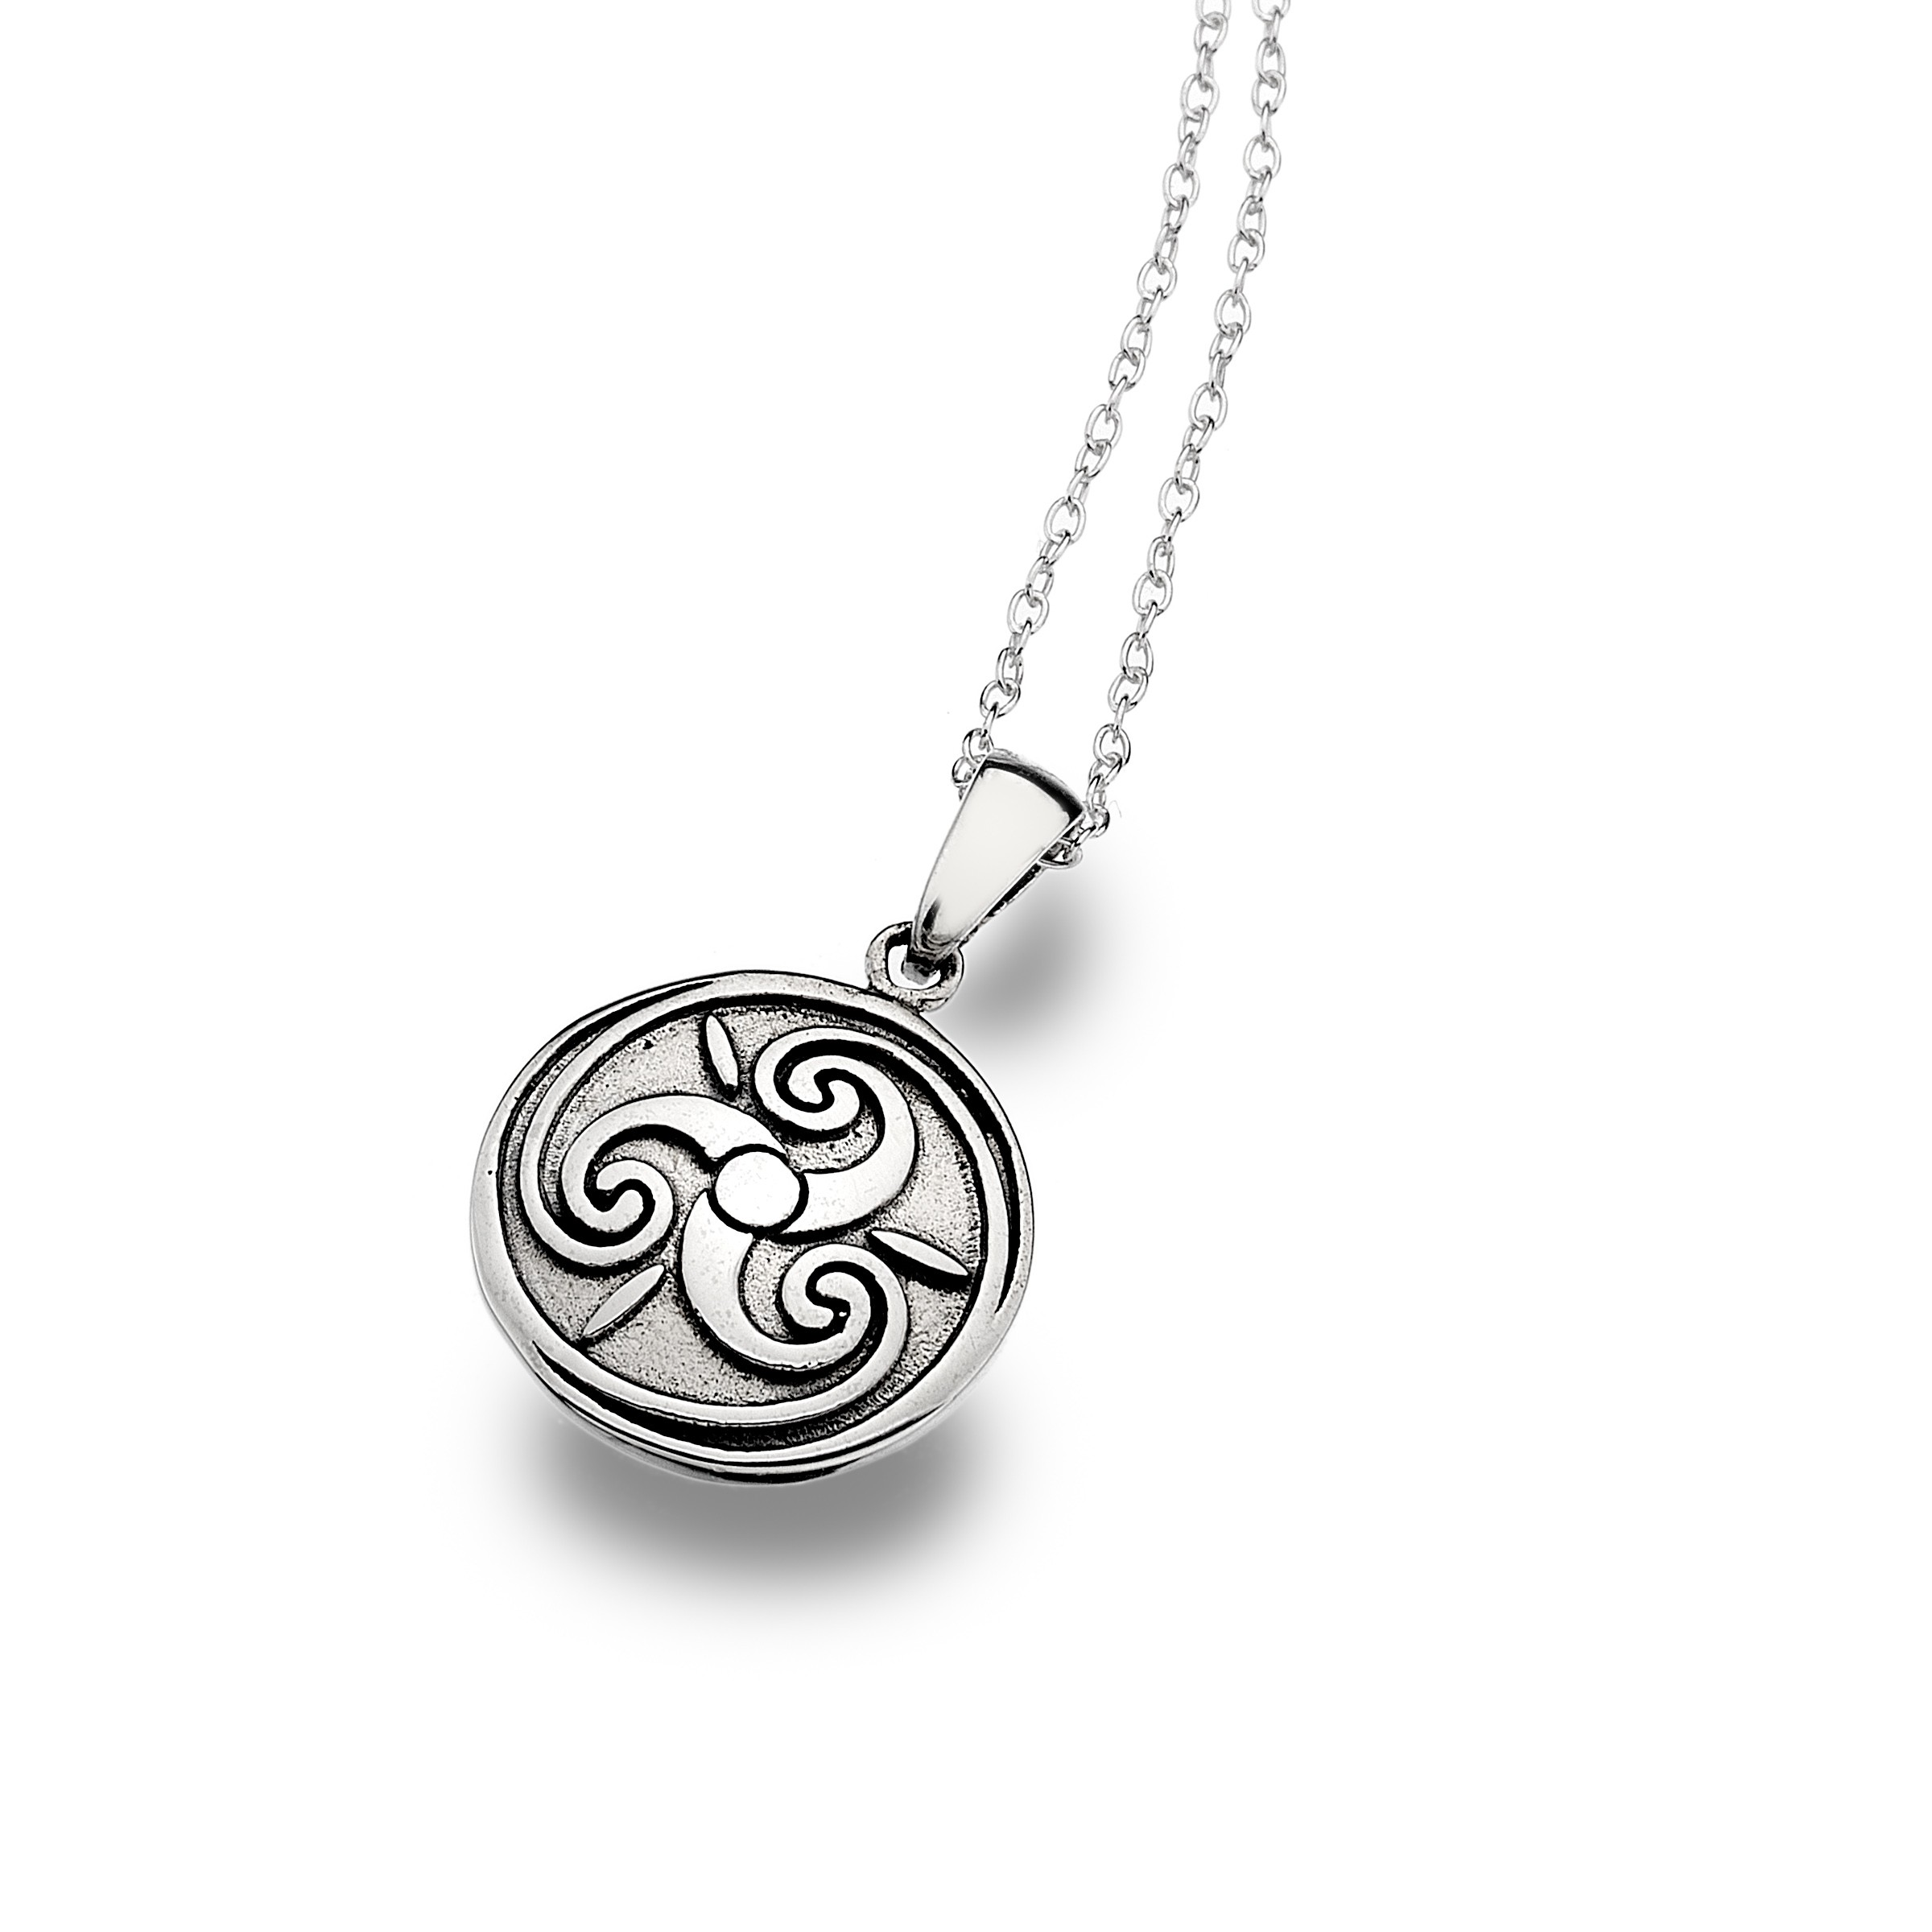 wedding birthday triskele engagement il pendant anniversary p necklace fullxfull bdsm dominant symbol collar triskelion gift slave submissive